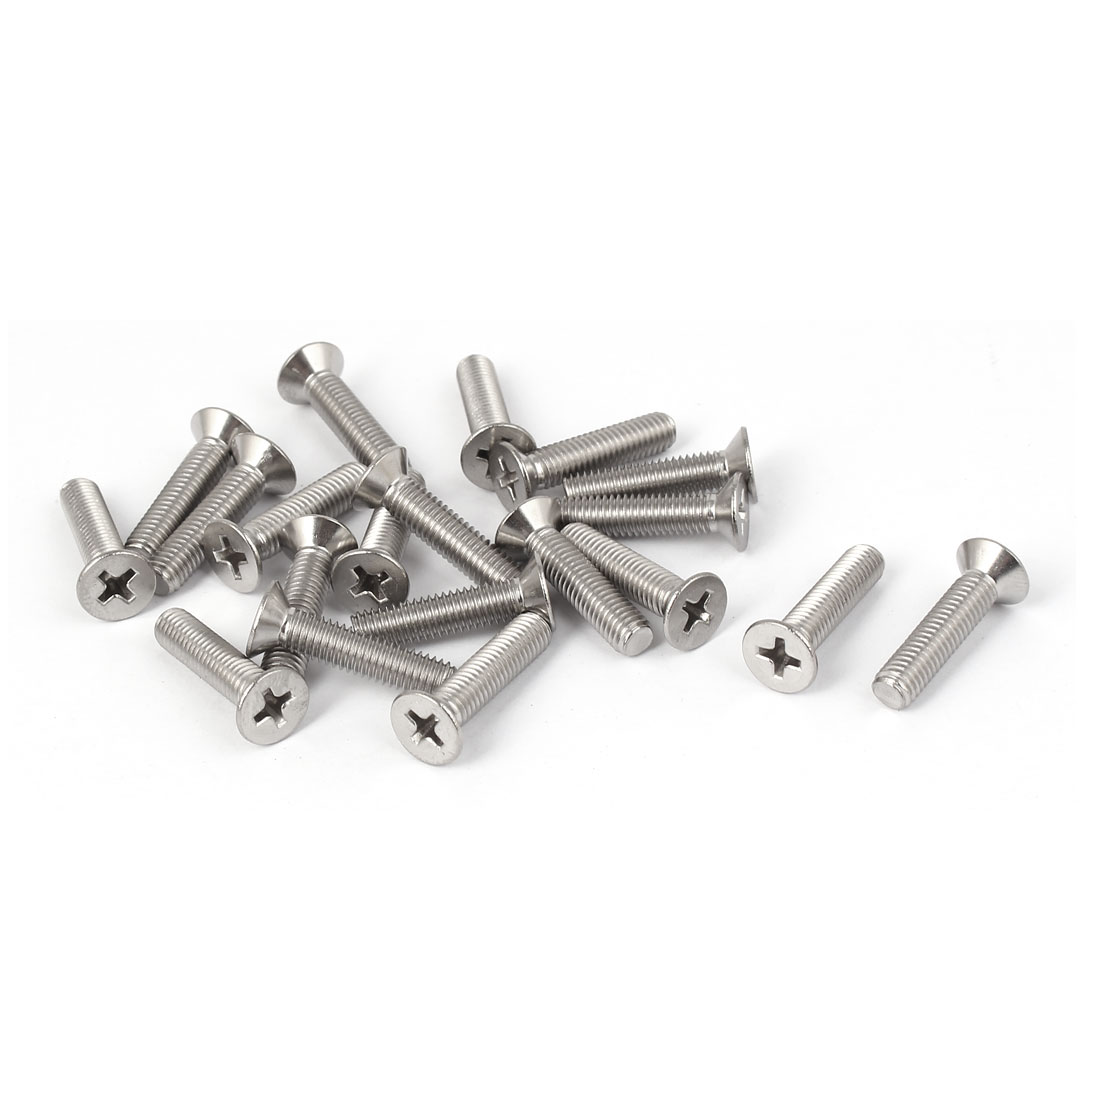 20 Pcs M5x22mm 316 Stainless Steel Countersunk Phillips Machine Screws Fasteners